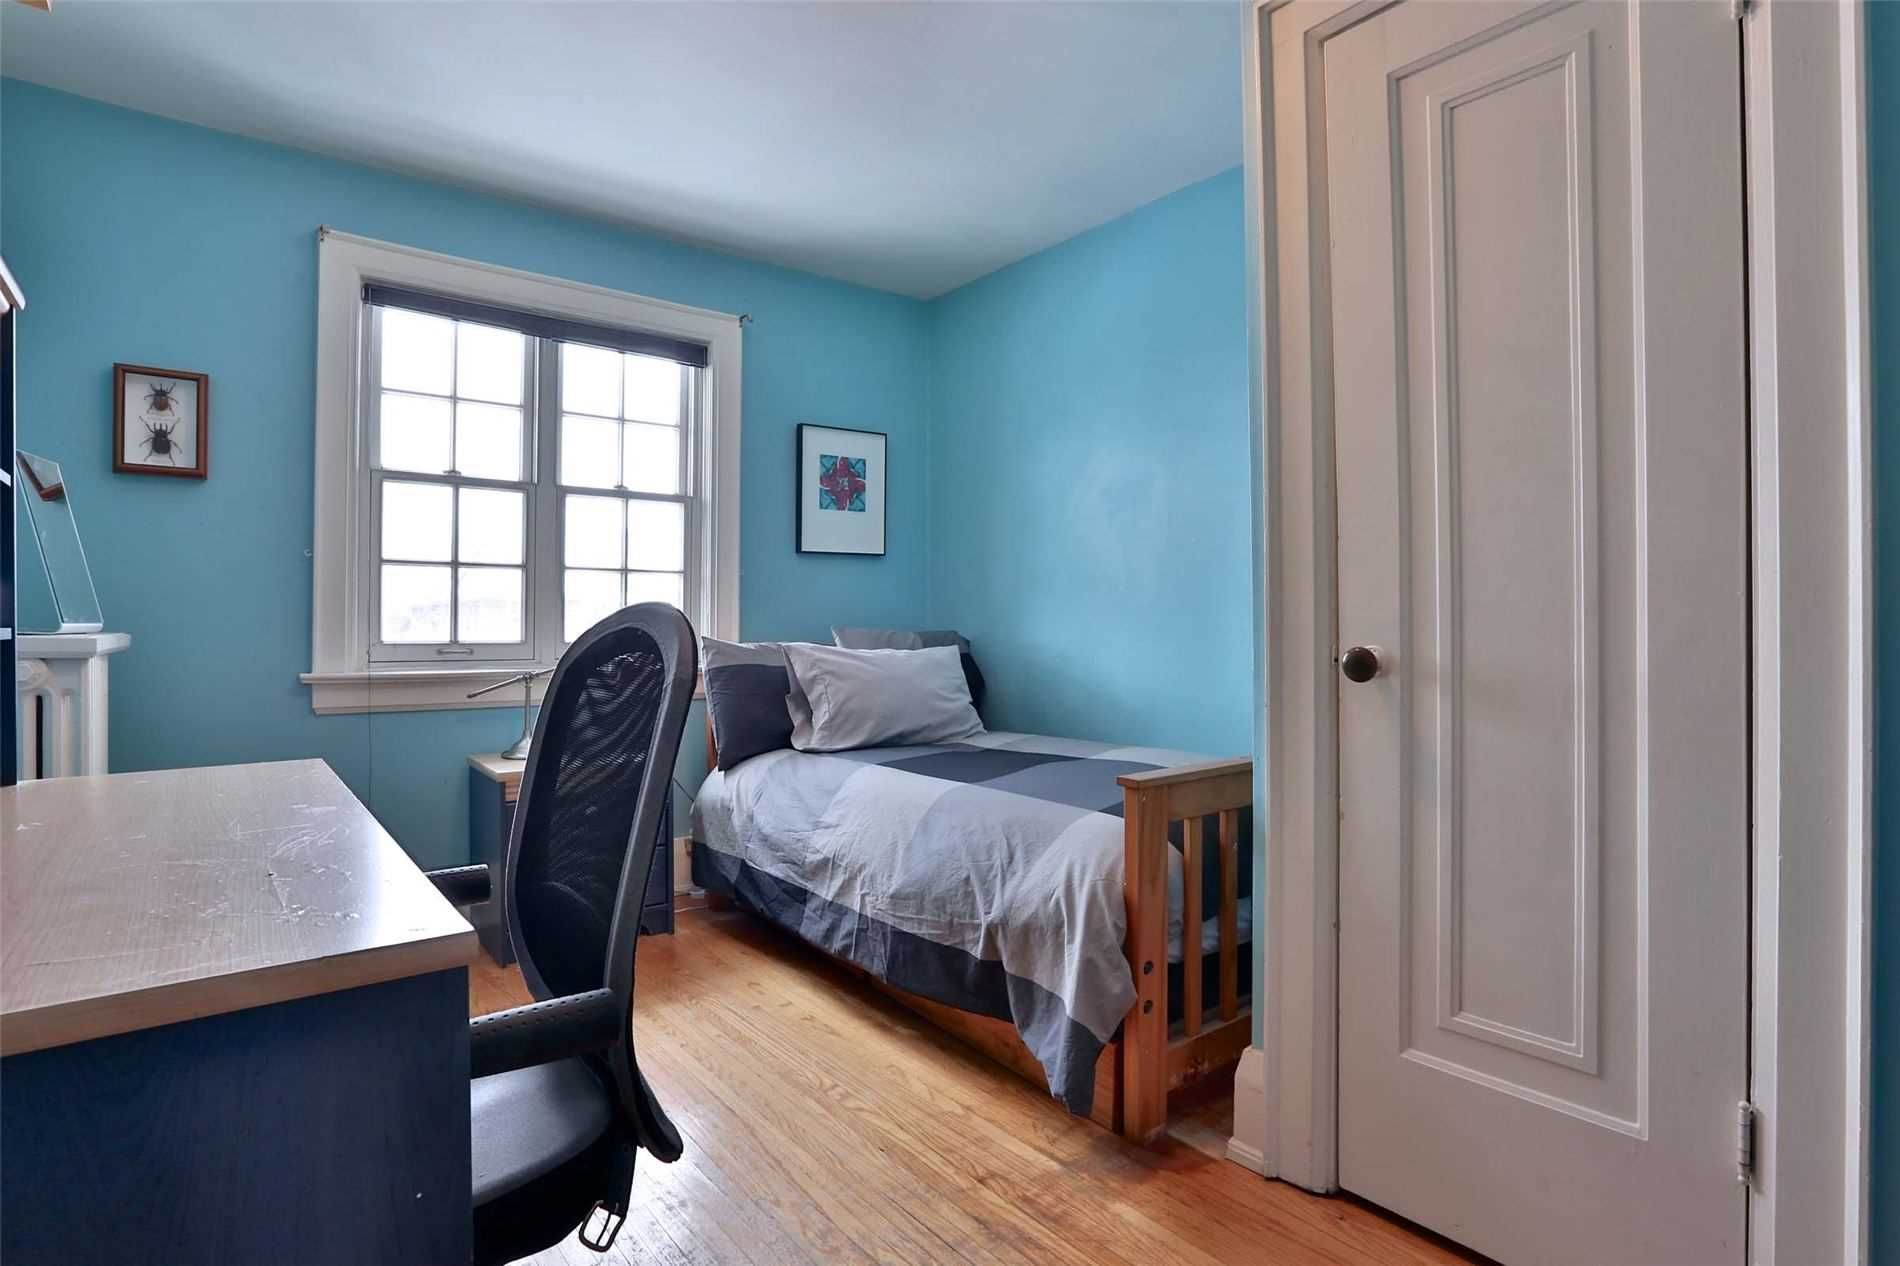 Photo 13: Photos: 15 Glen Castle Street in Toronto: Lawrence Park South House (2-Storey) for sale (Toronto C04)  : MLS®# C4704094